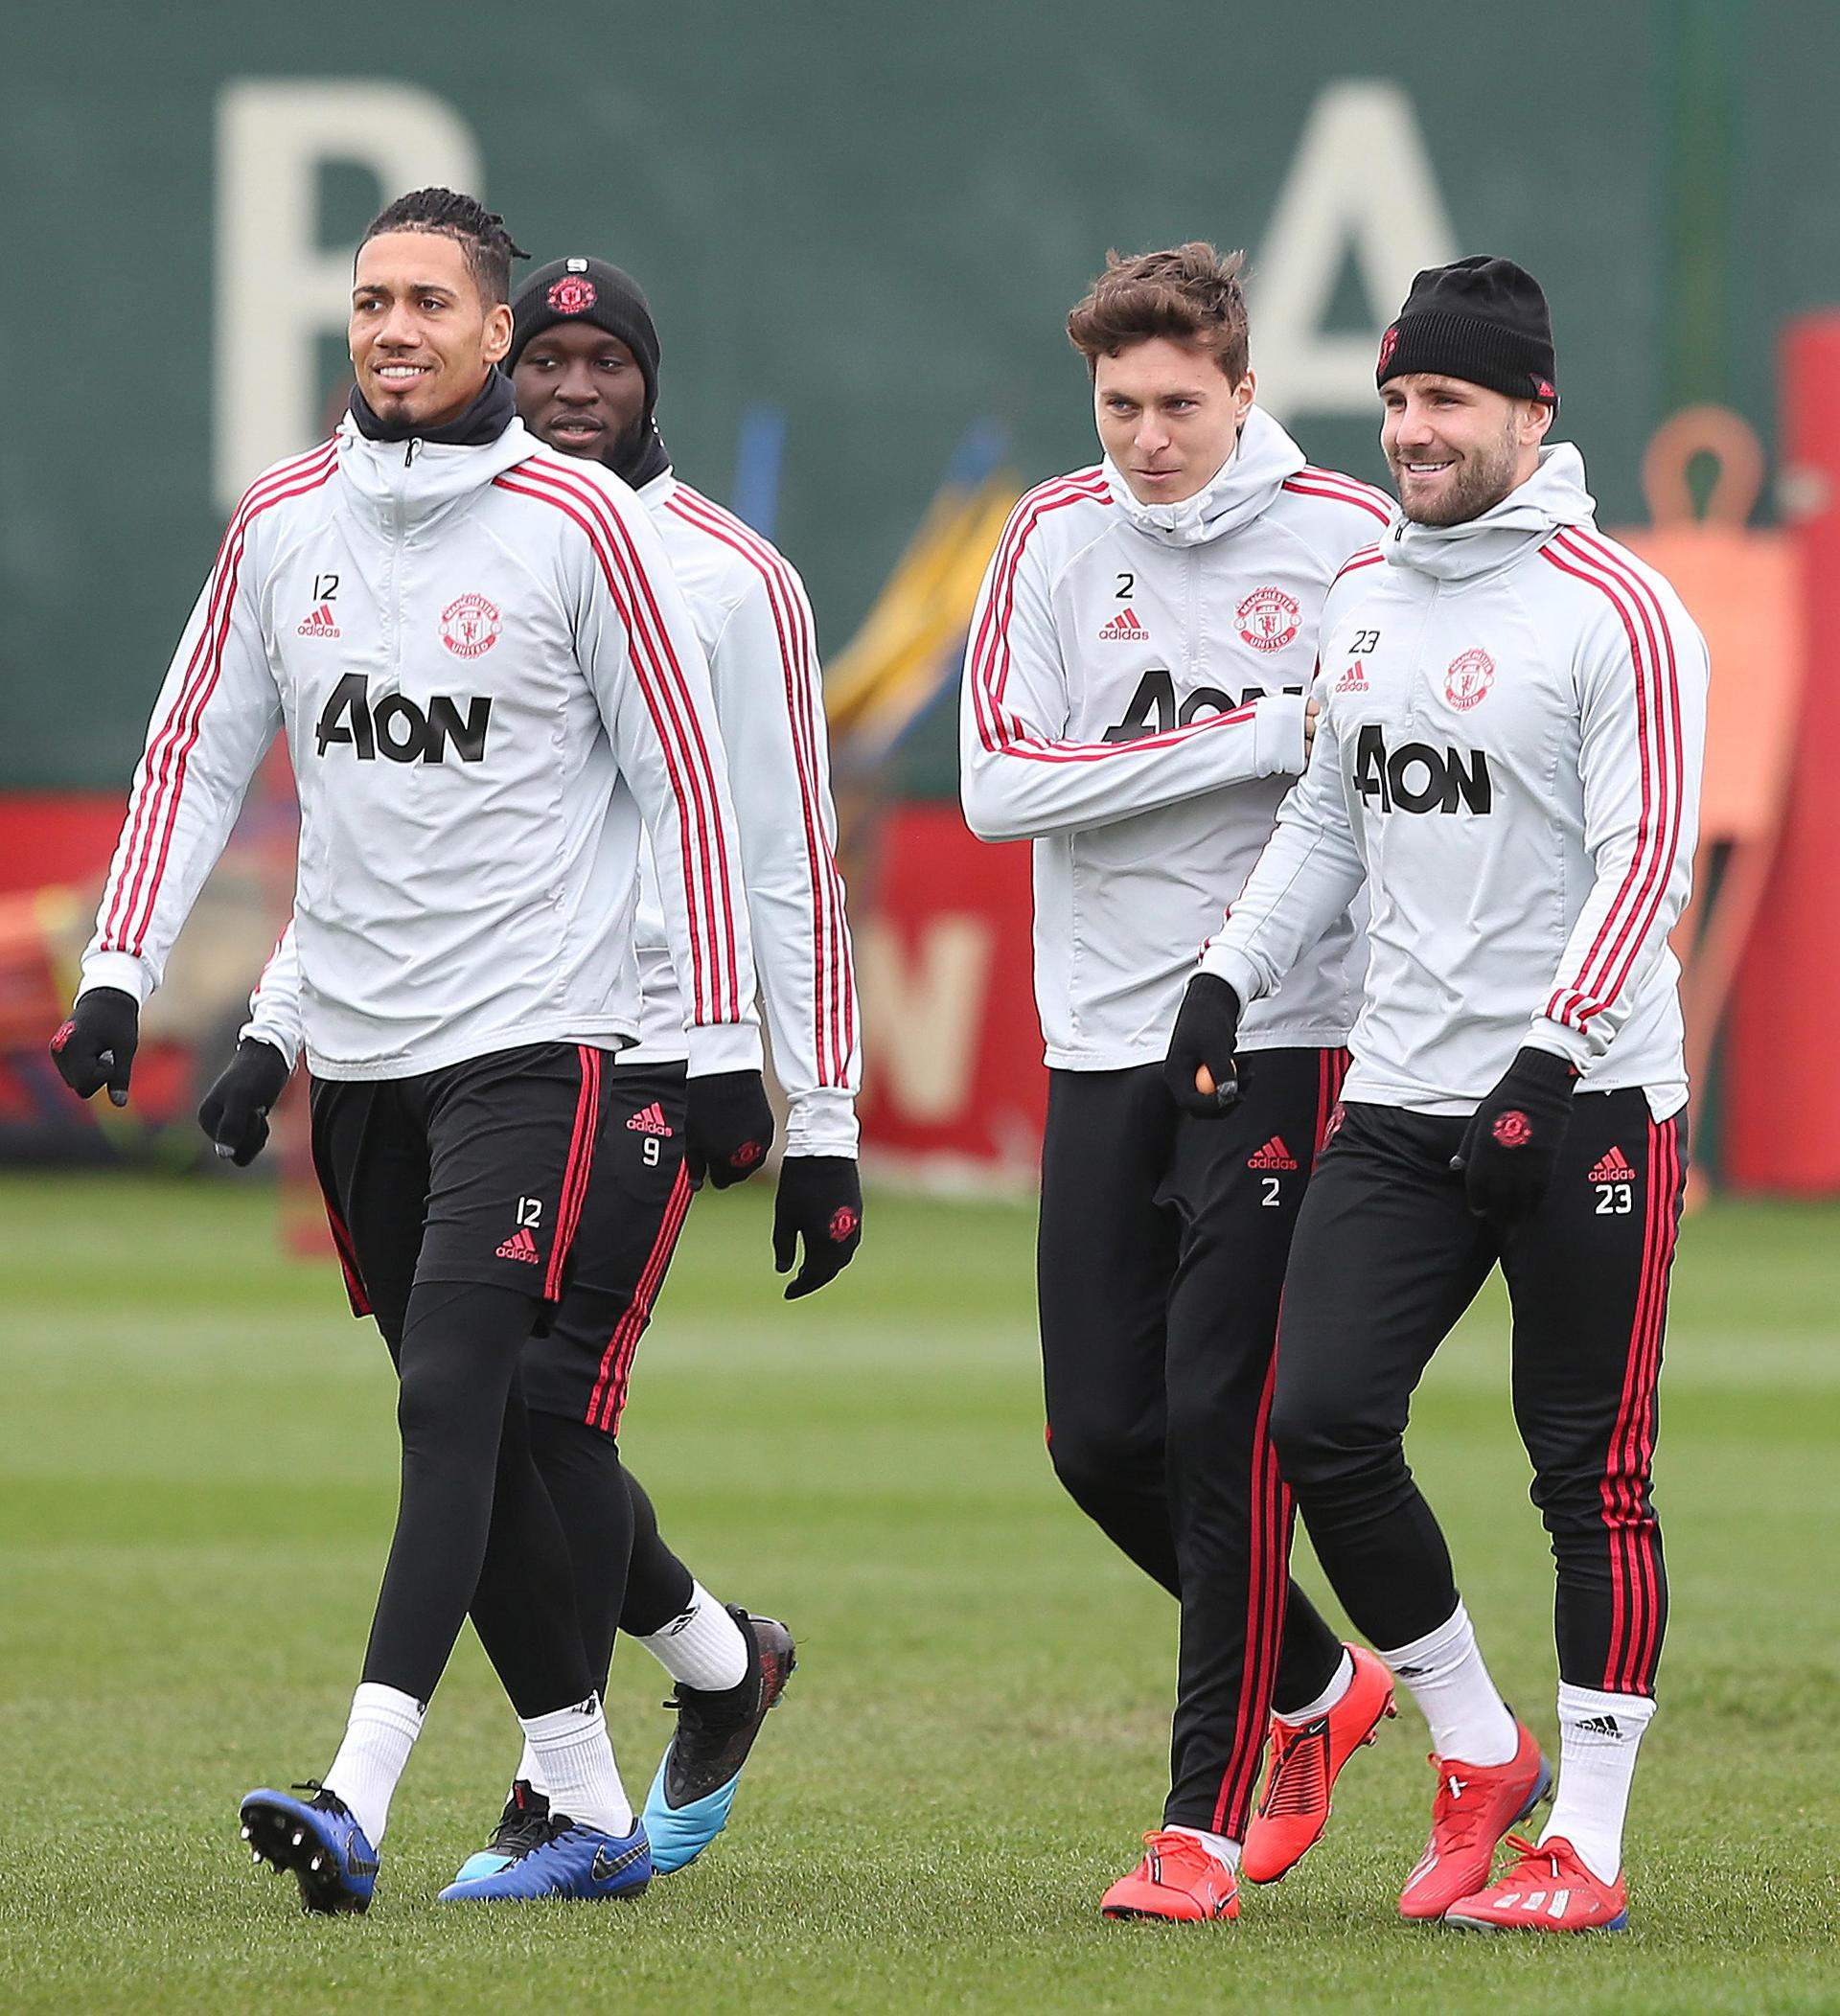 Man United players in training.